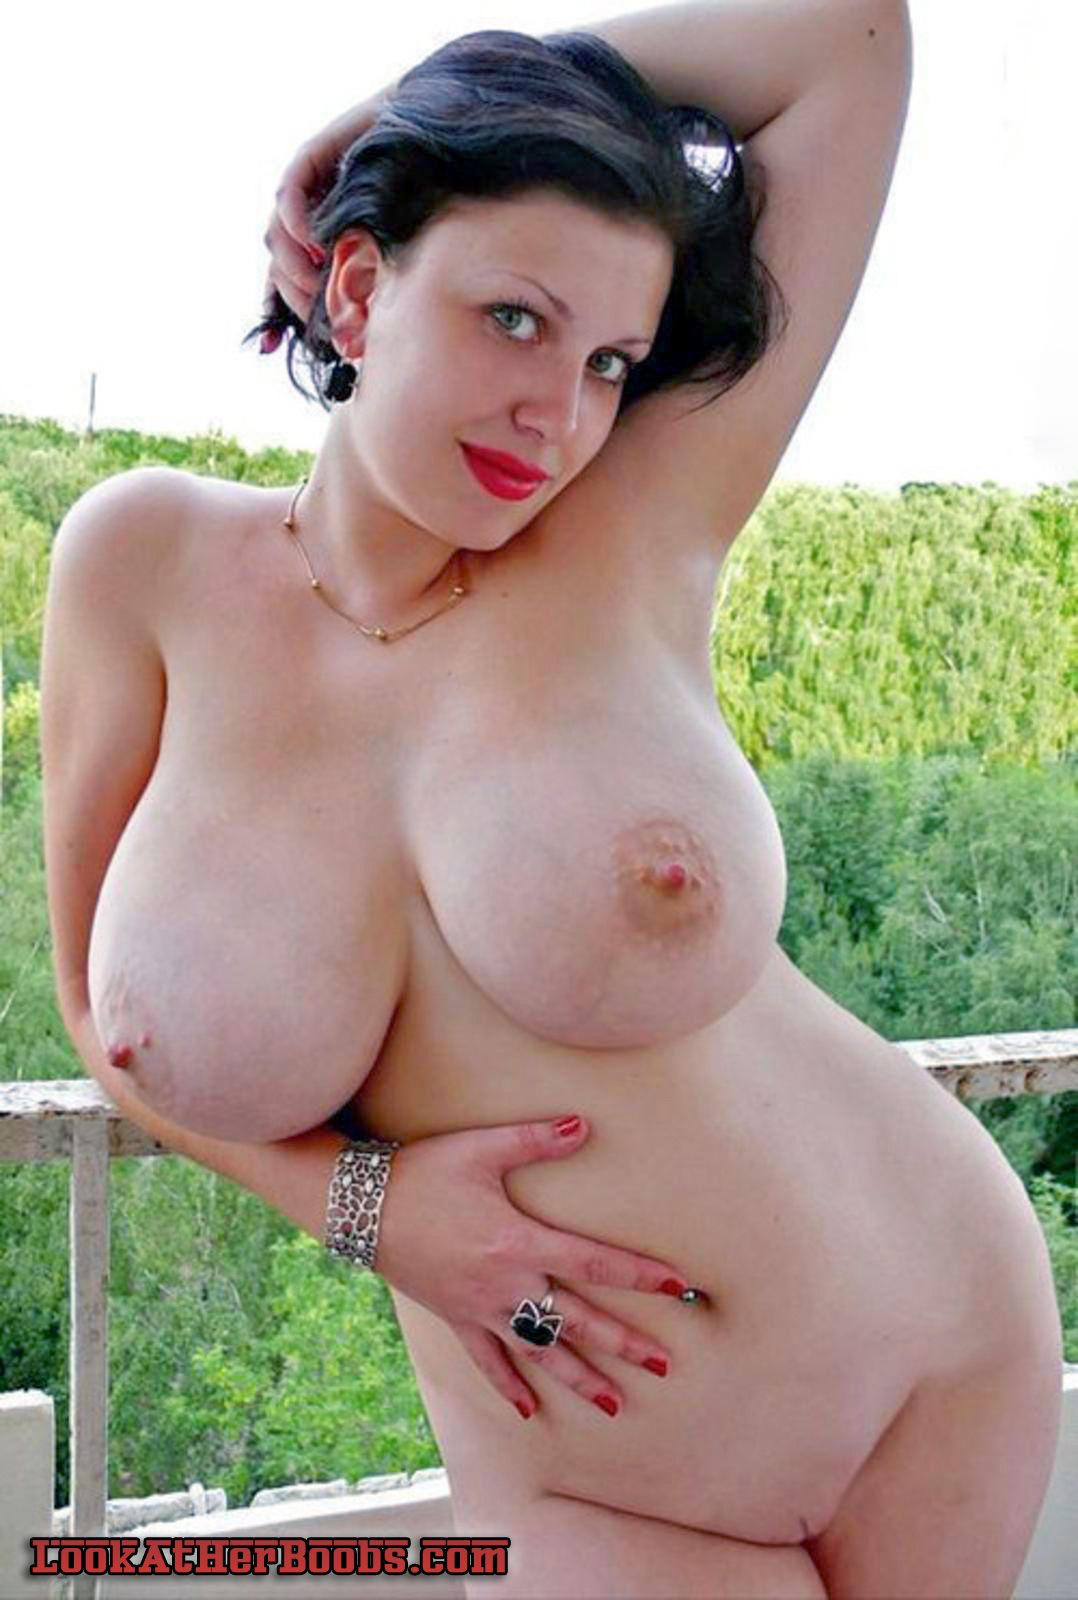 big-boobs-large-breasts-massive-tits-natural-boobies-humongous